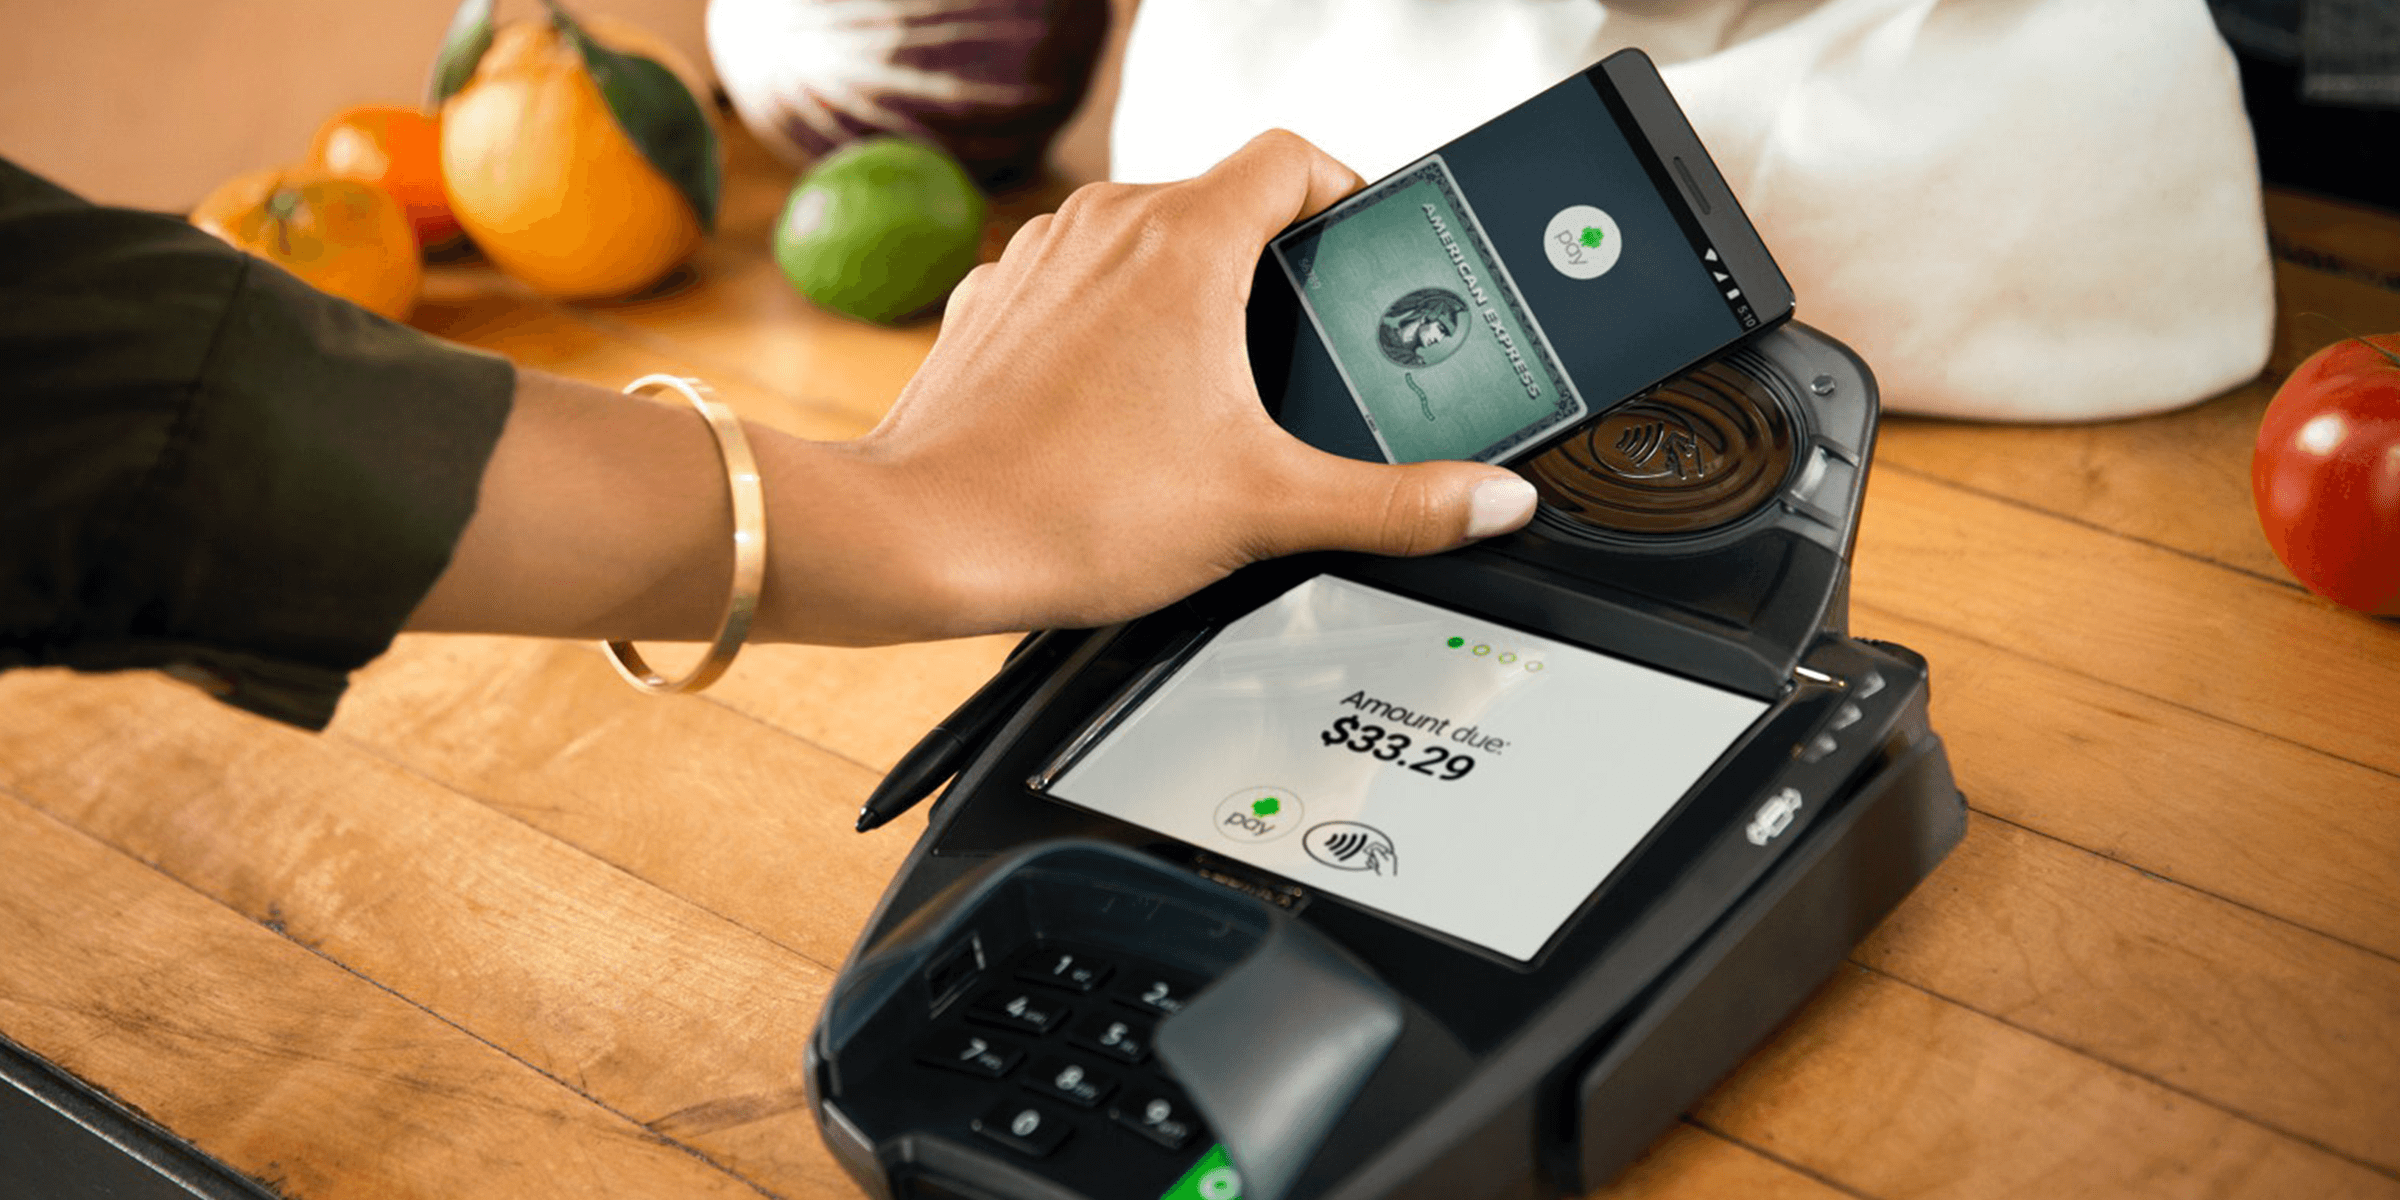 NFC Payment with Android Pay